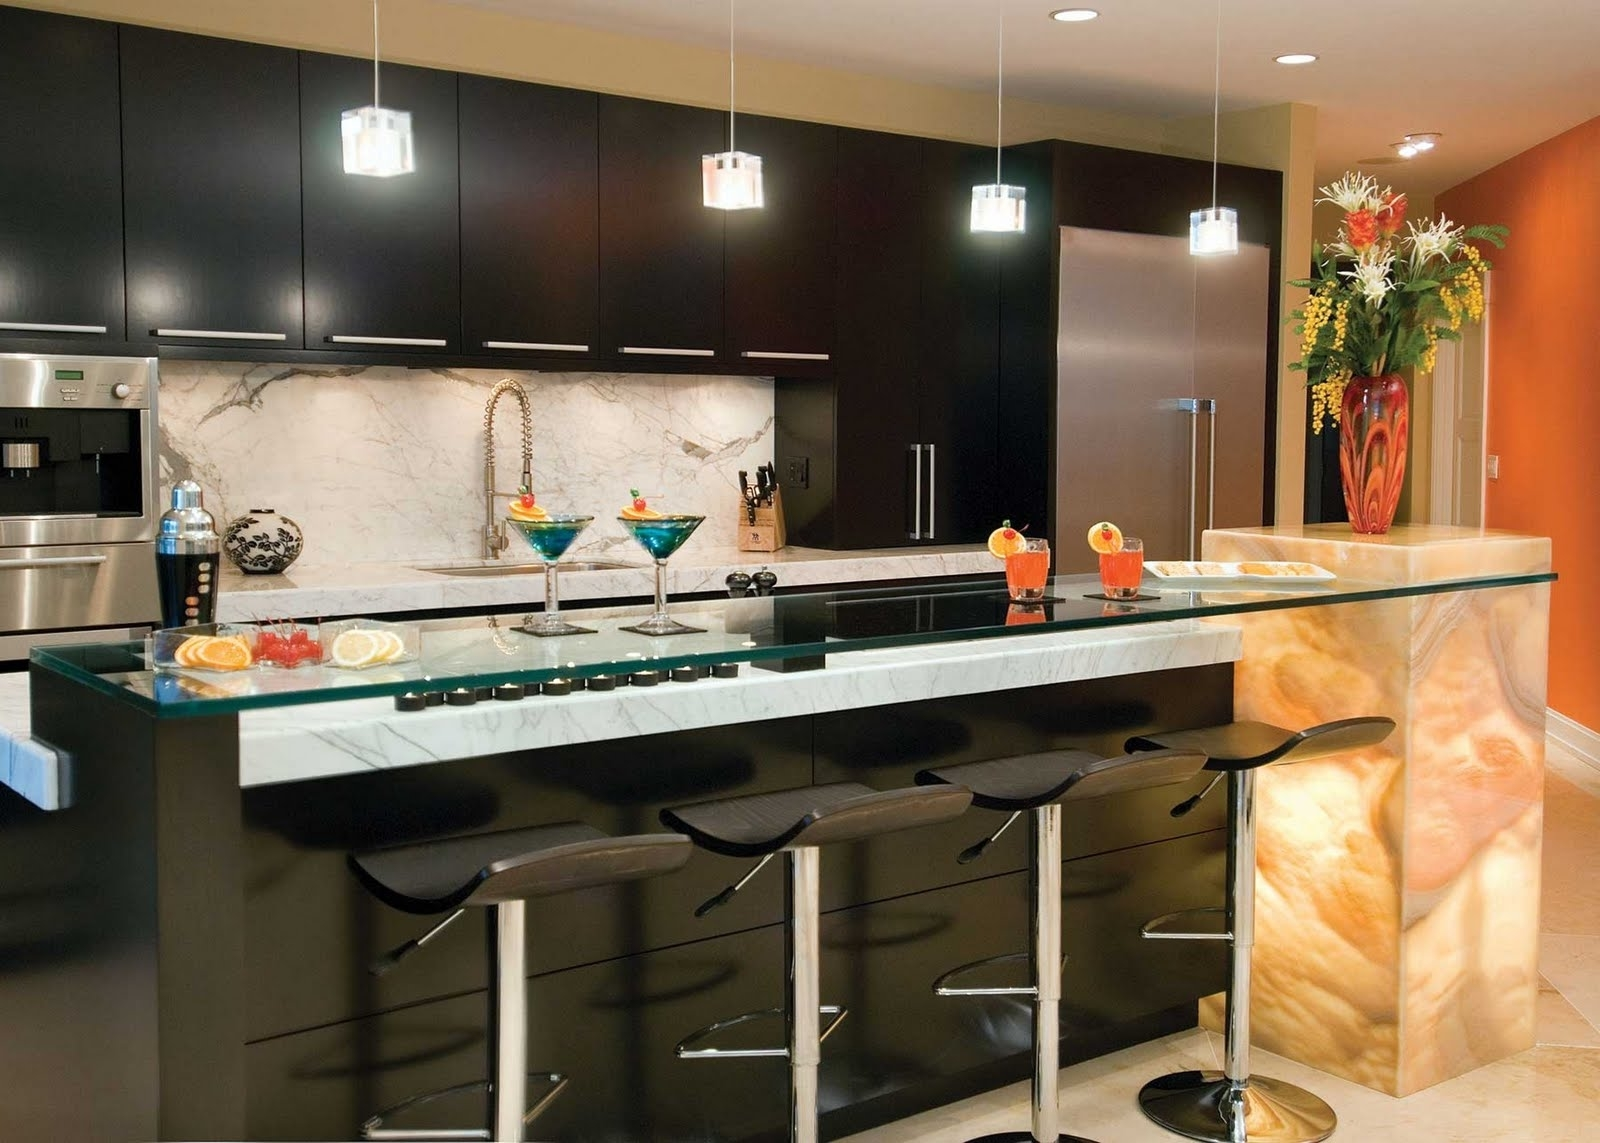 Featured Image of Italian Kitchen With Breakfast Bar